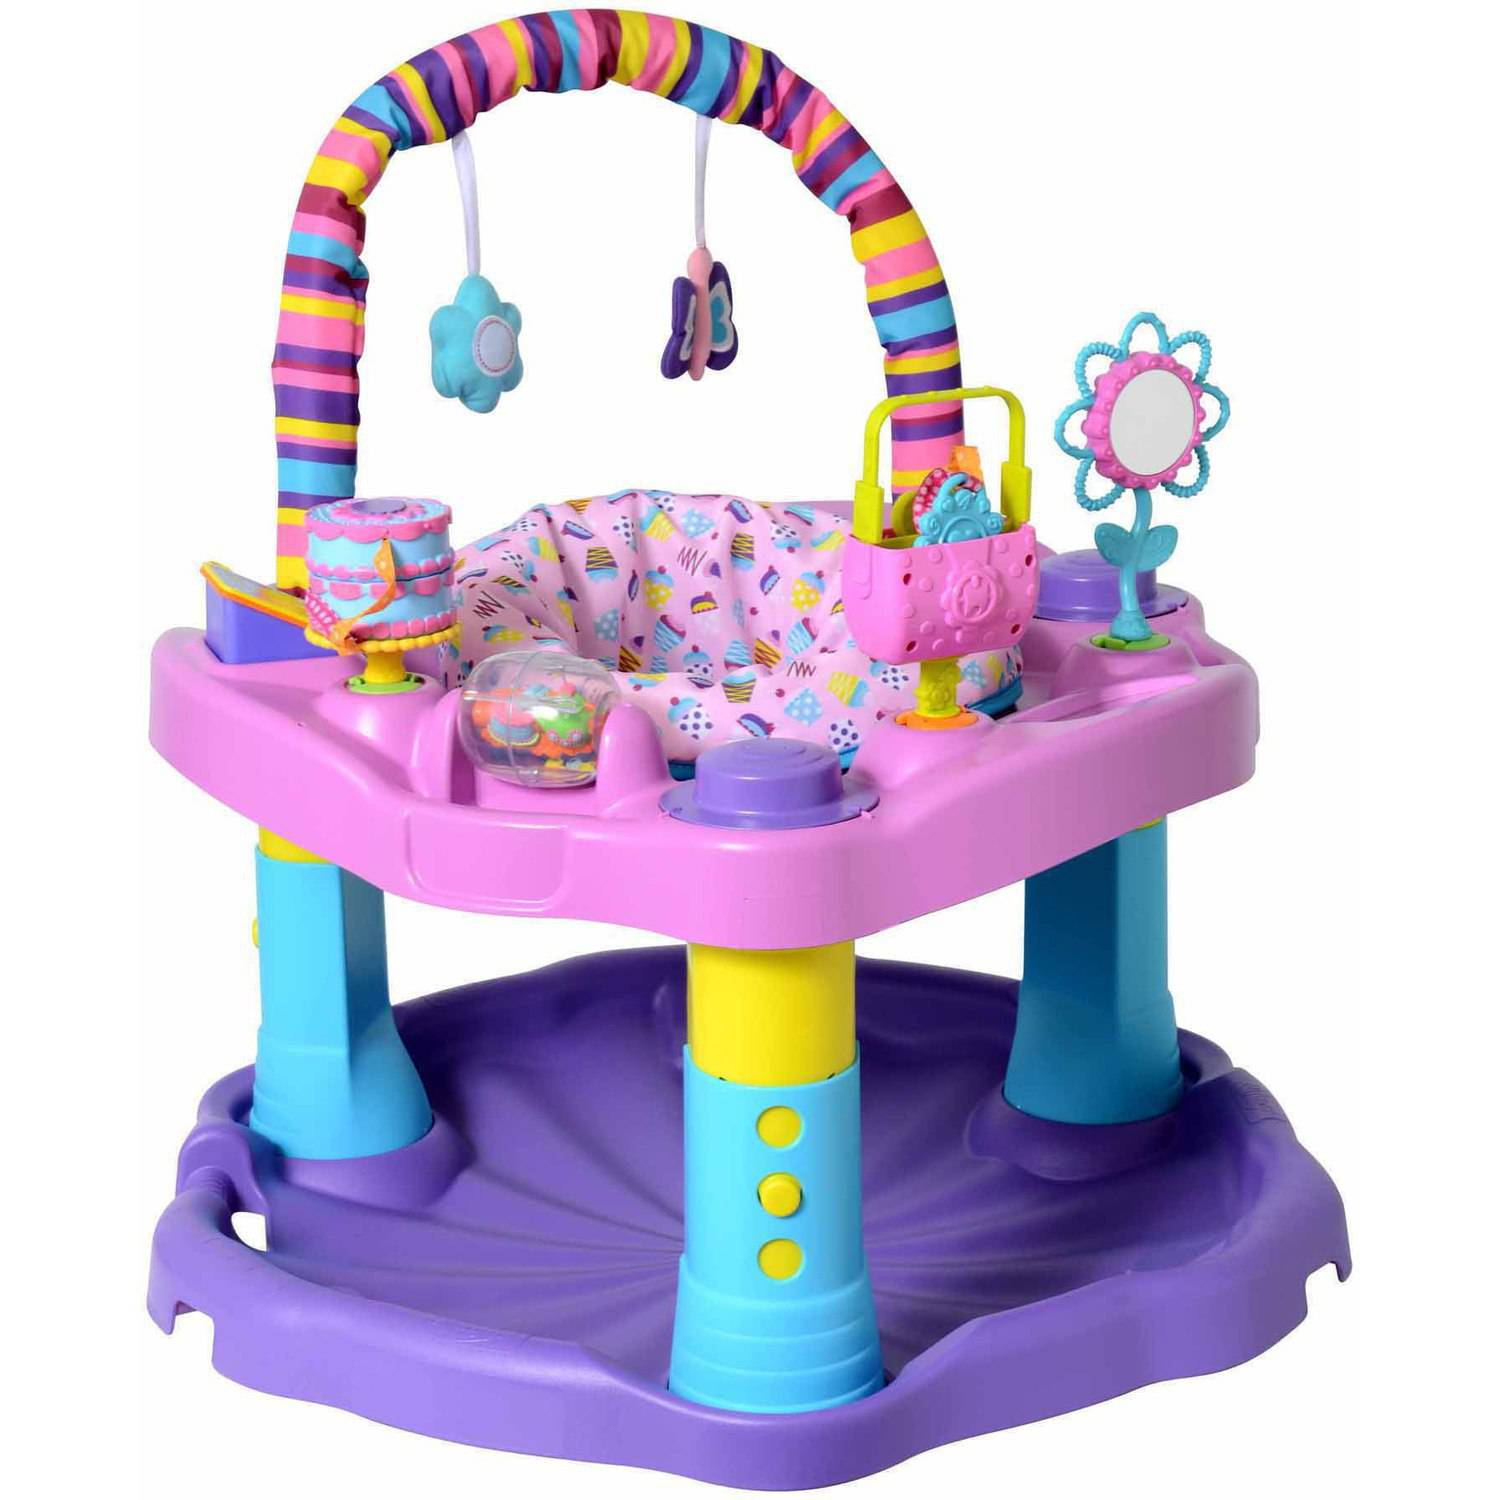 Evenflo ExerSaucer Sweet Tea Party